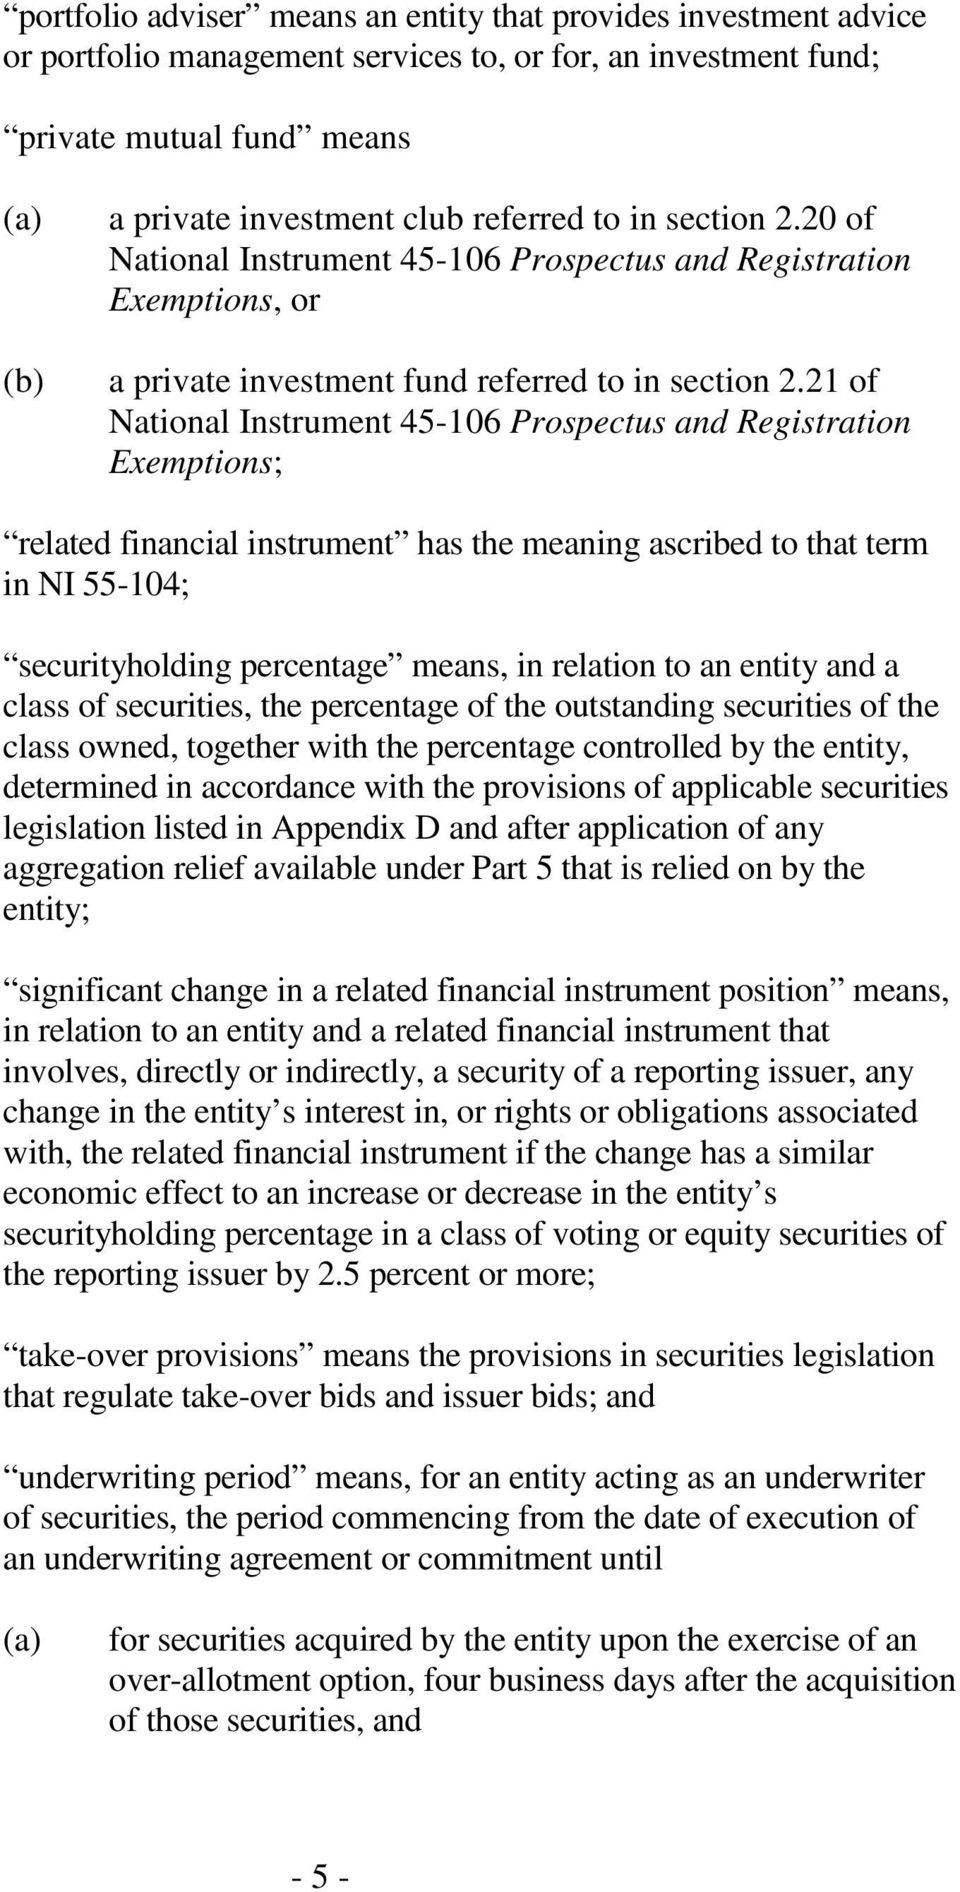 21 of National Instrument 45-106 Prospectus and Registration Exemptions; related financial instrument has the meaning ascribed to that term in NI 55-104; securityholding percentage means, in relation